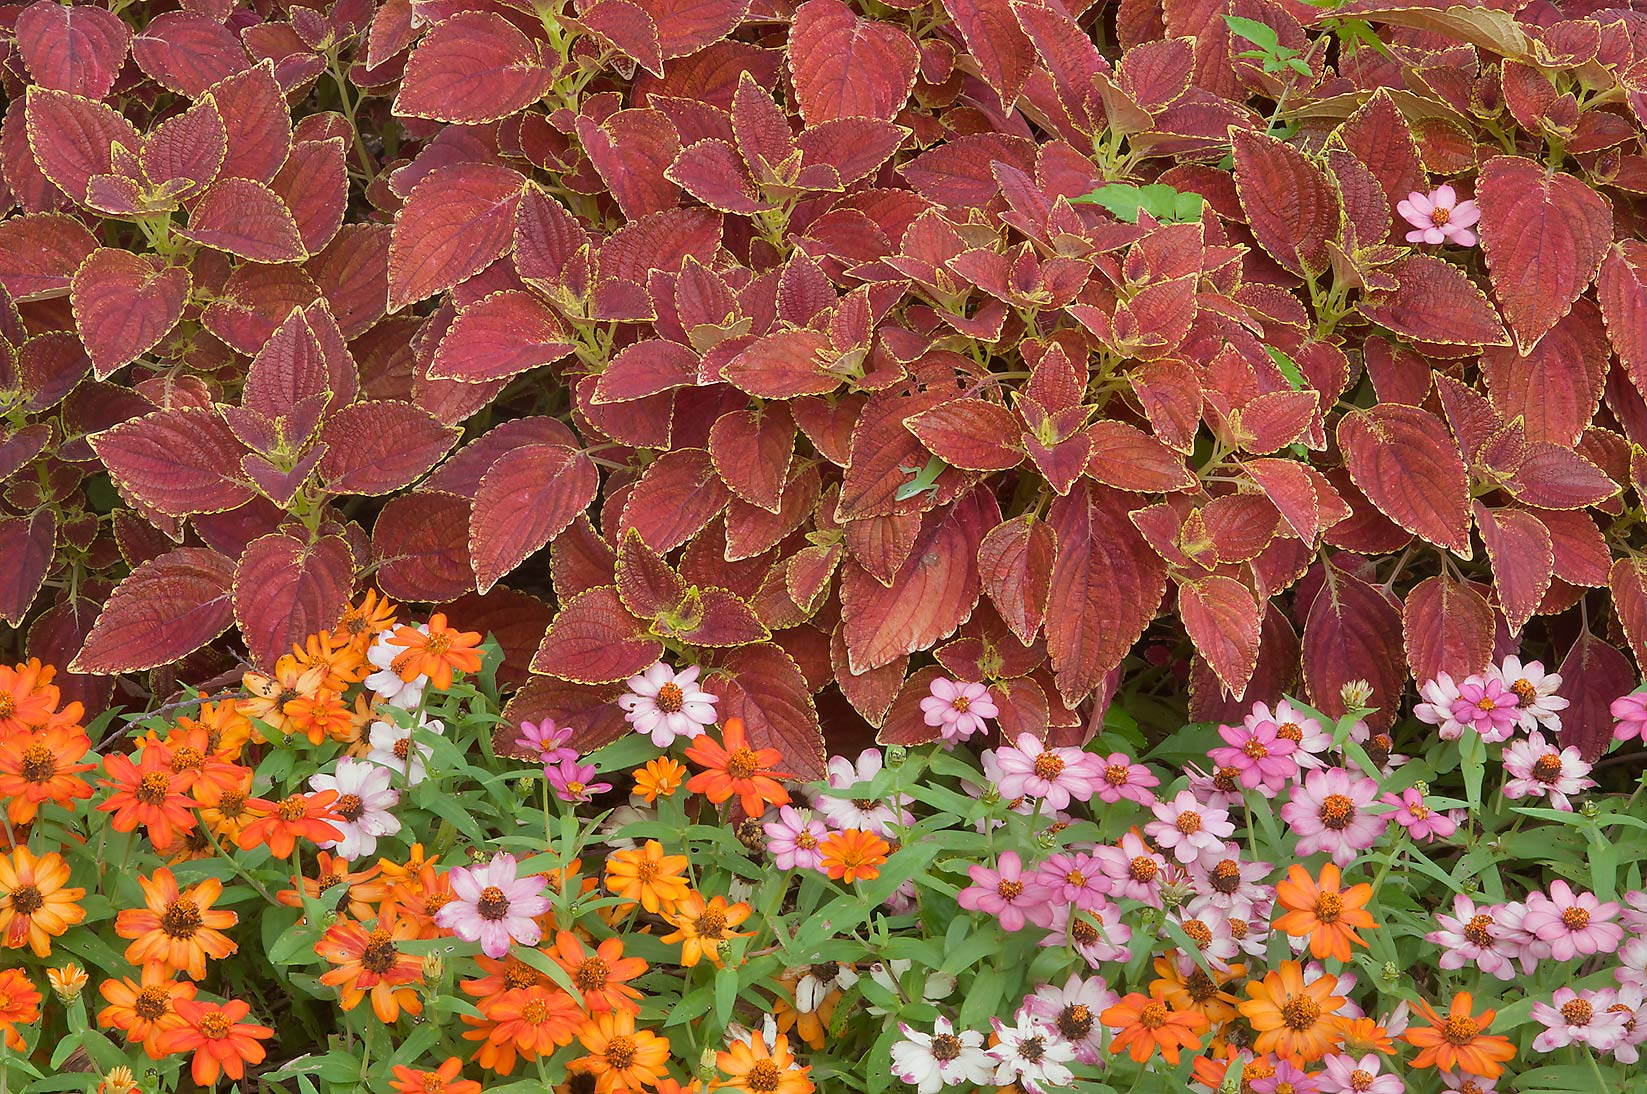 Coleus and asters in Mercer Arboretum and Botanical Gardens. Humble (Houston area), Texas